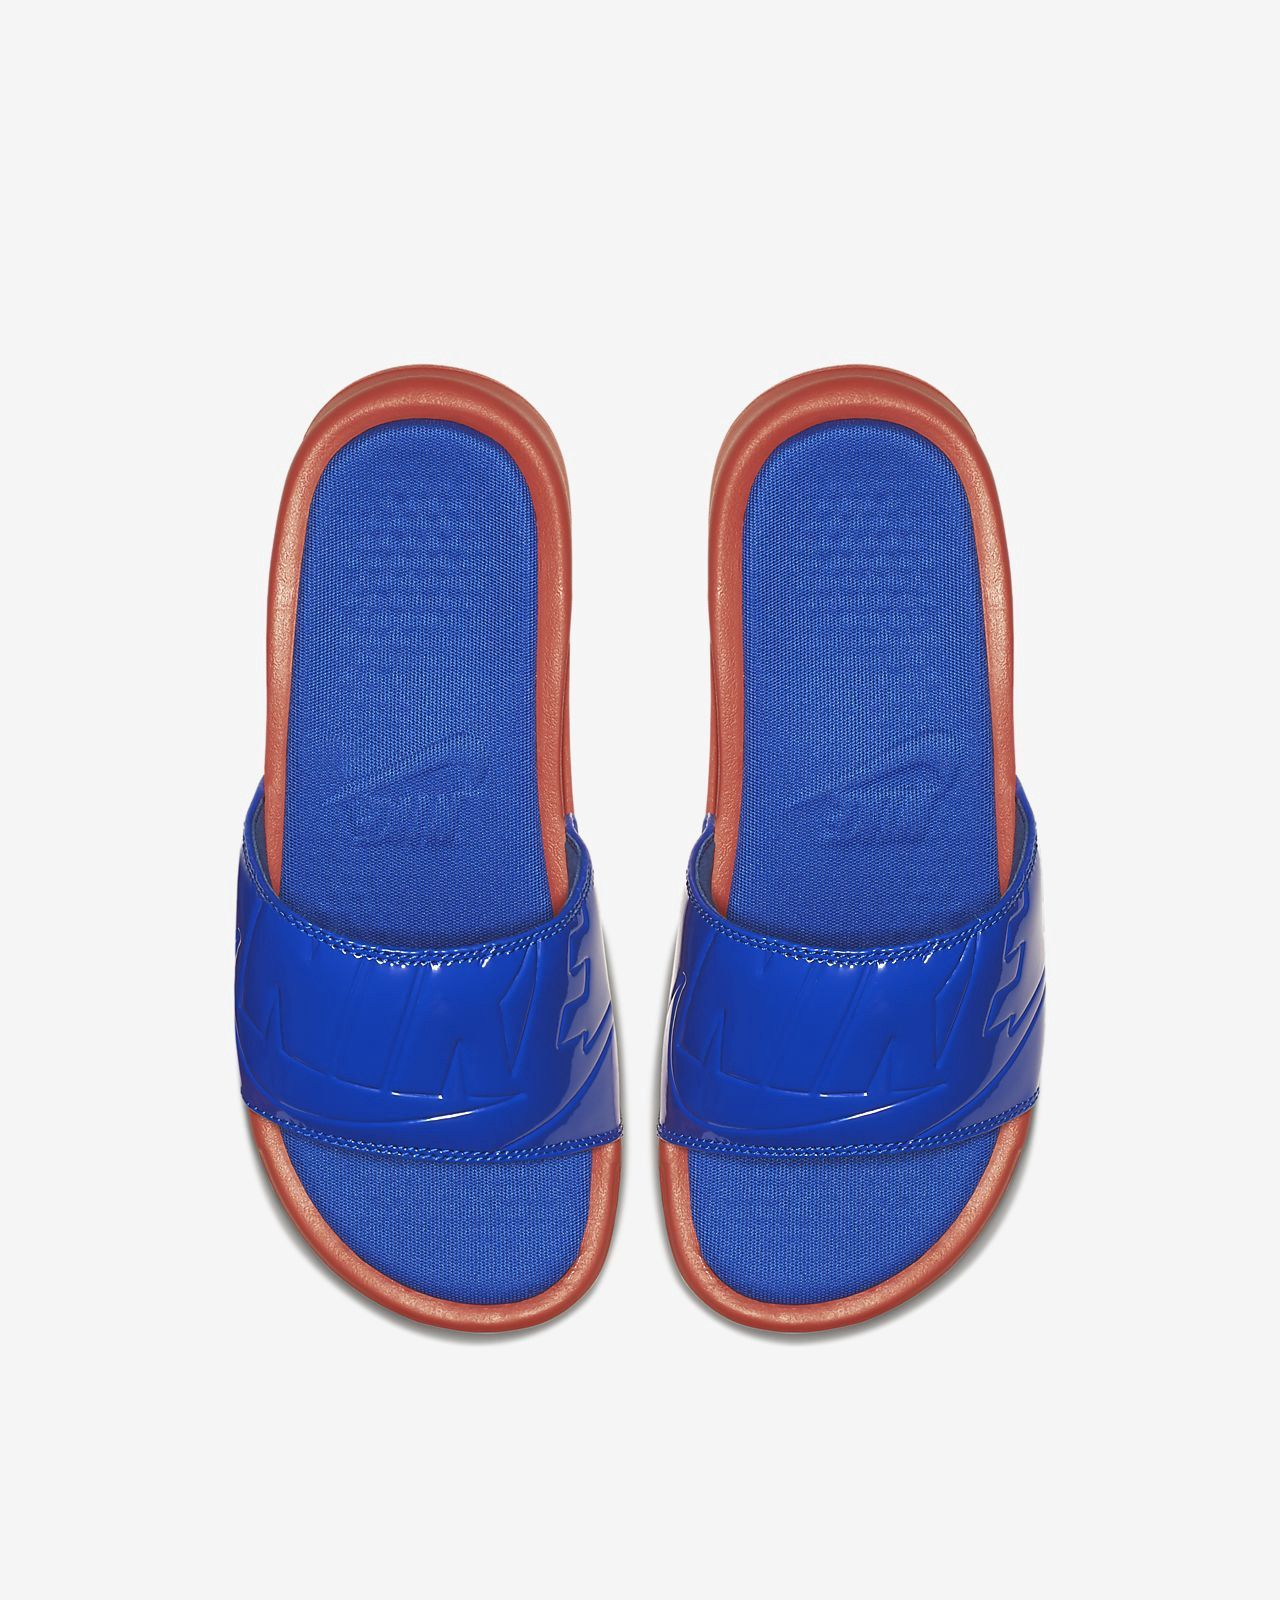 best website 766e2 90344 canada nike air huarache city low. womens shoe. 120. prev 80088 168f8   australia nike benassi jdi ultra se womens slide 10 blue 3edf8 6a3d8